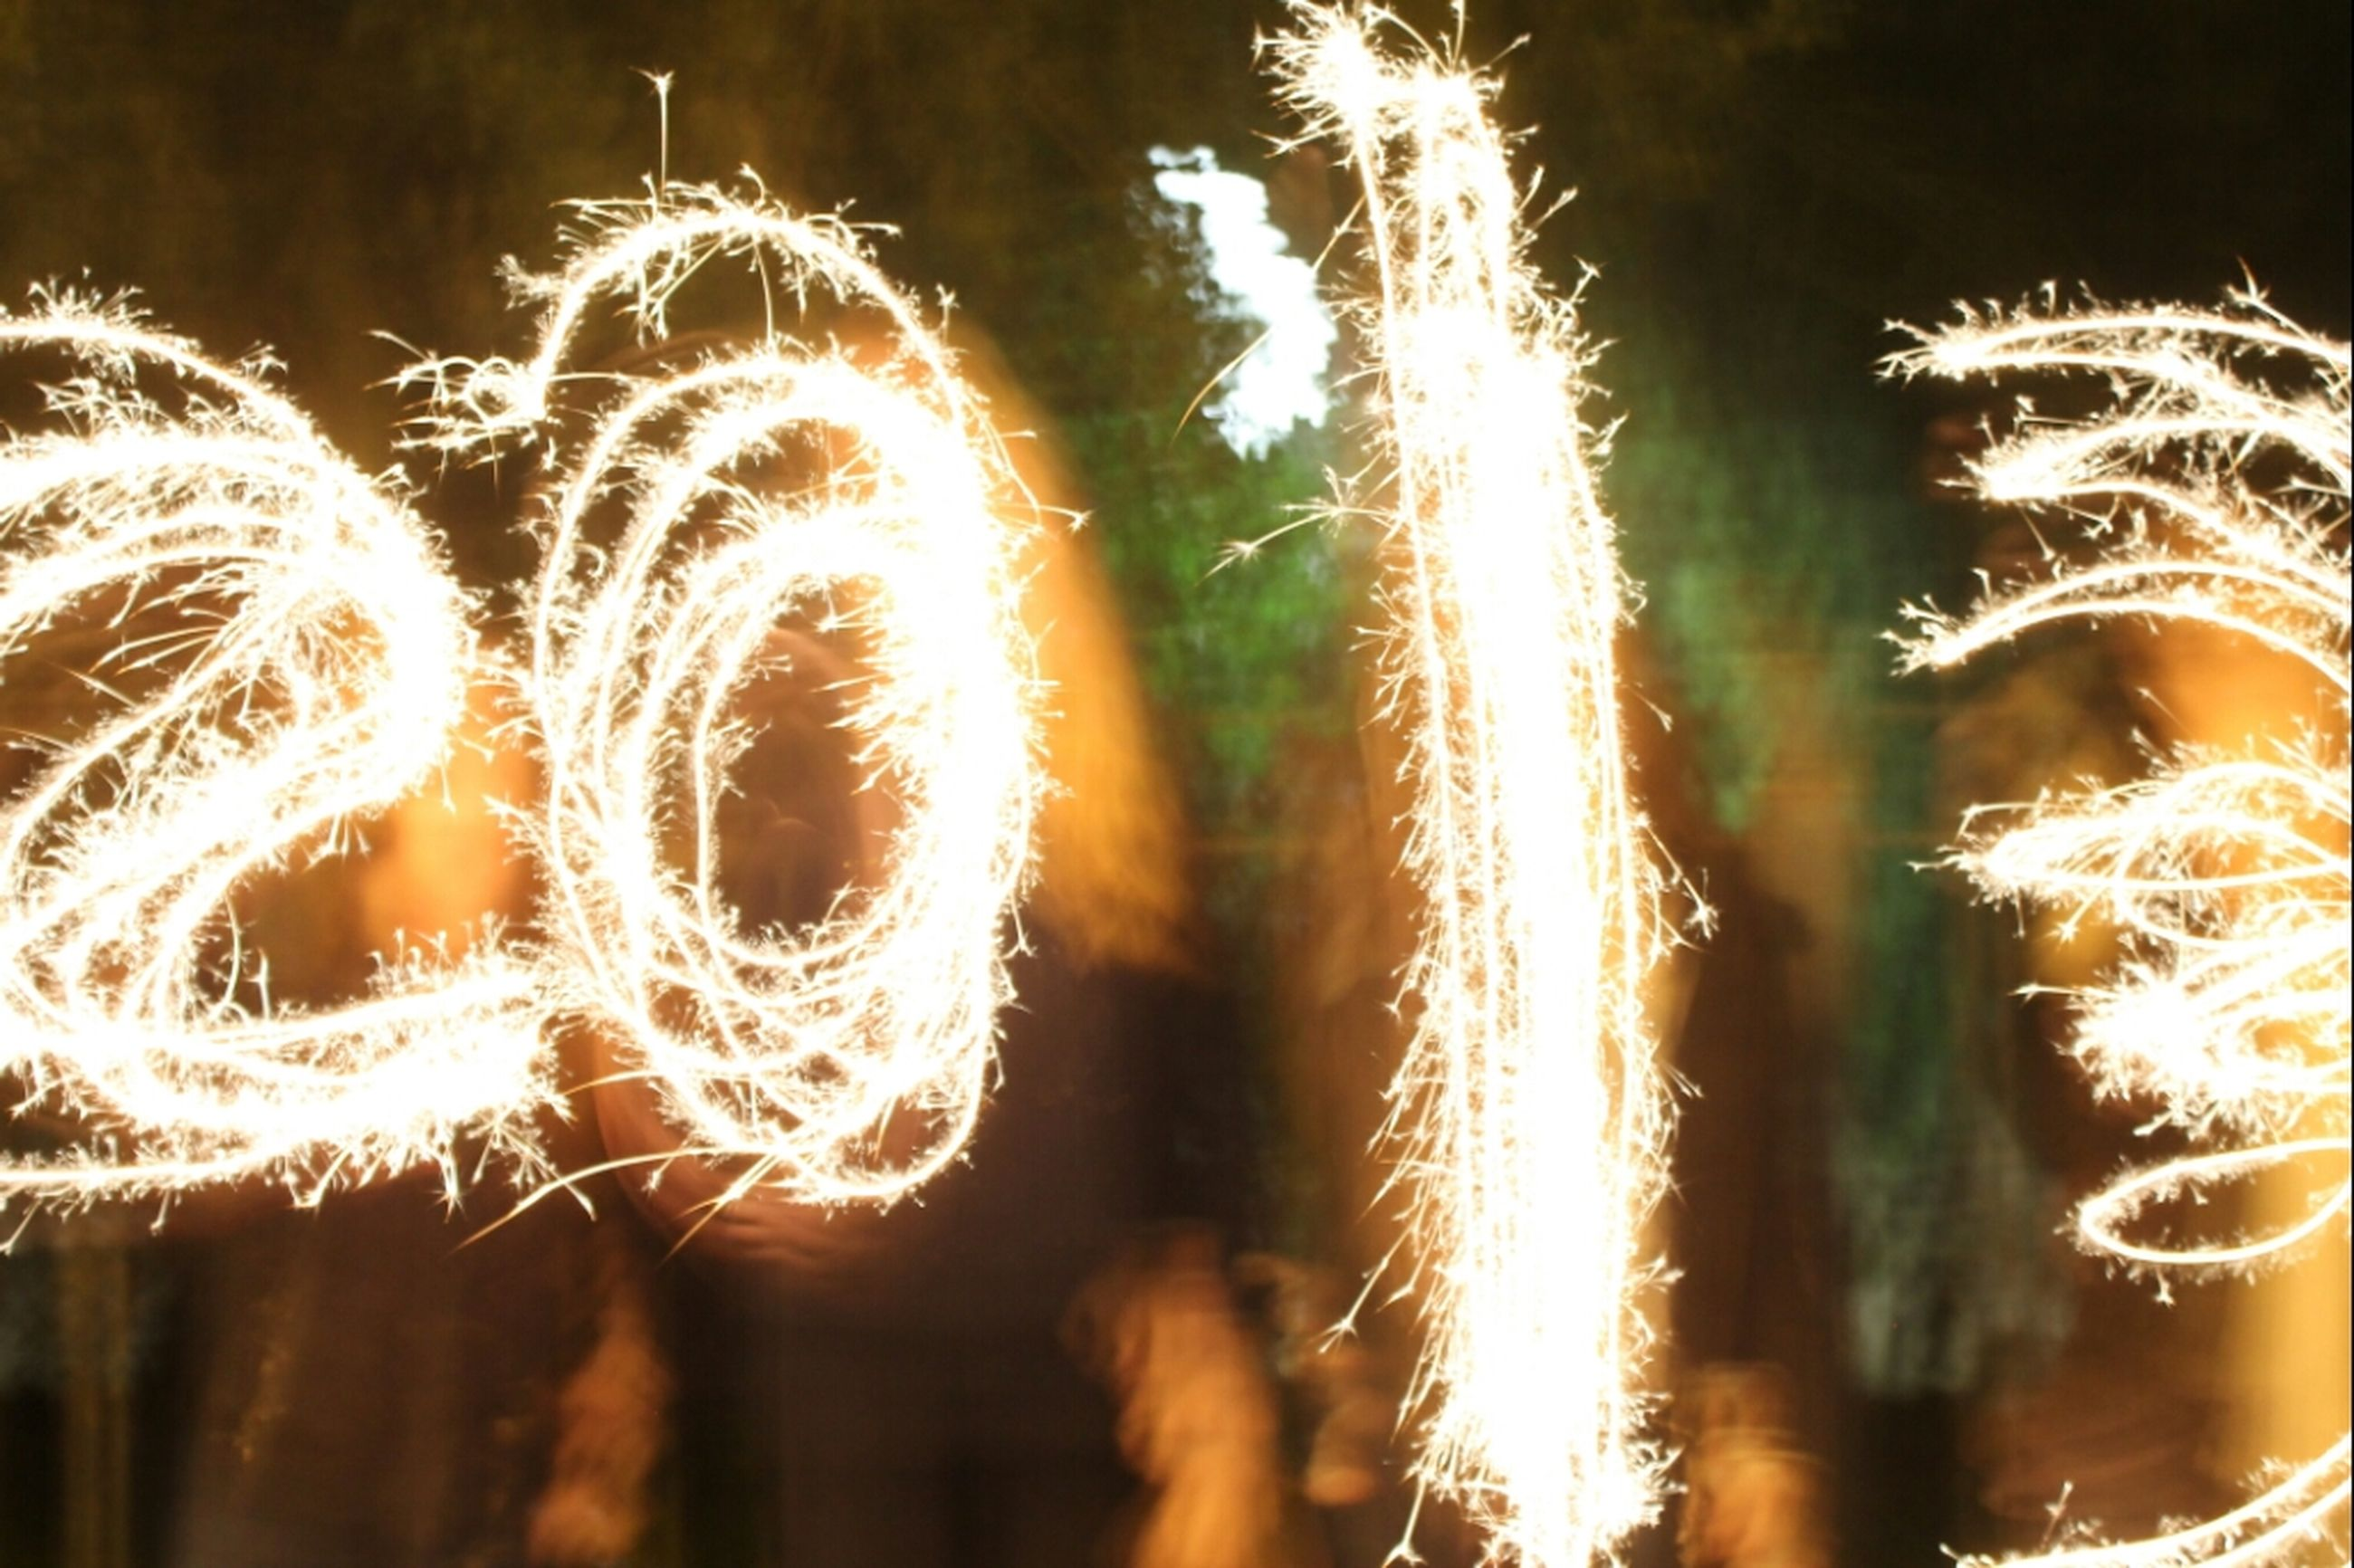 illuminated, night, long exposure, growth, glowing, blurred motion, celebration, outdoors, arts culture and entertainment, nature, yellow, close-up, firework display, motion, sparks, sky, no people, focus on foreground, multi colored, beauty in nature